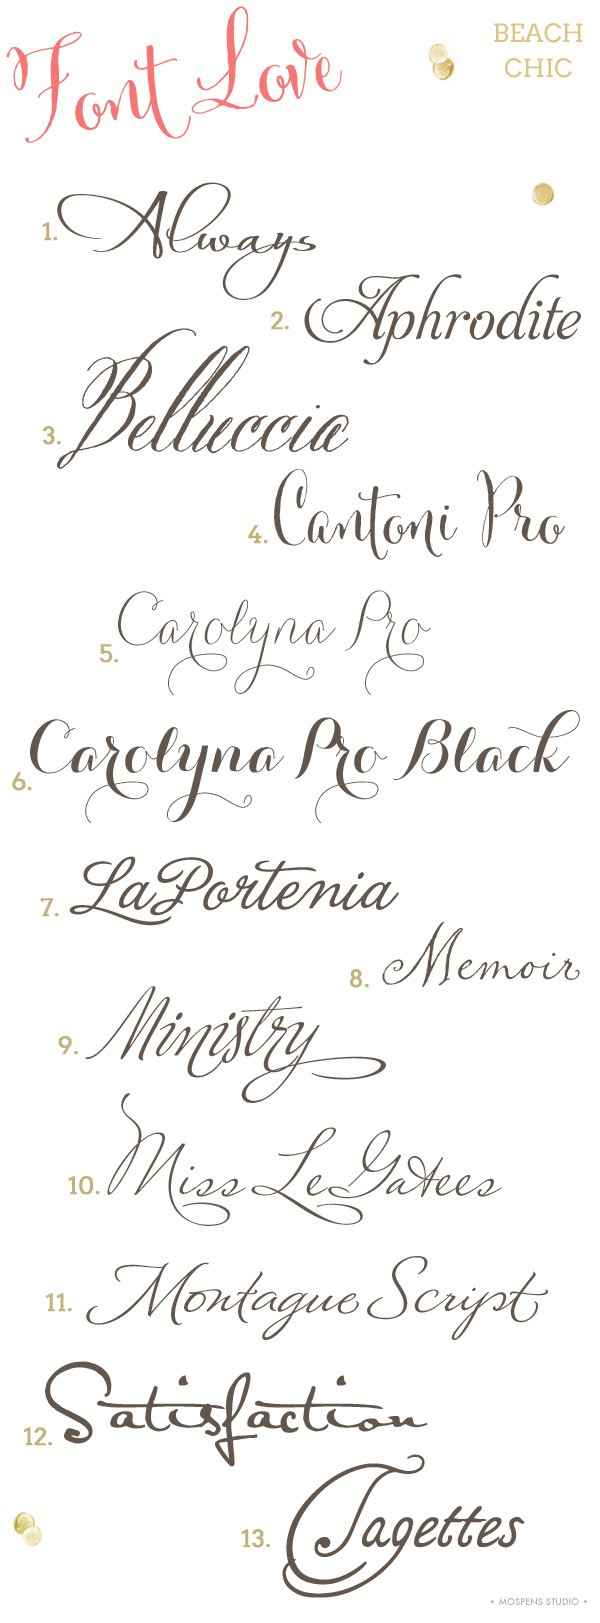 Beach wedding invitation fonts | Mospens Studio